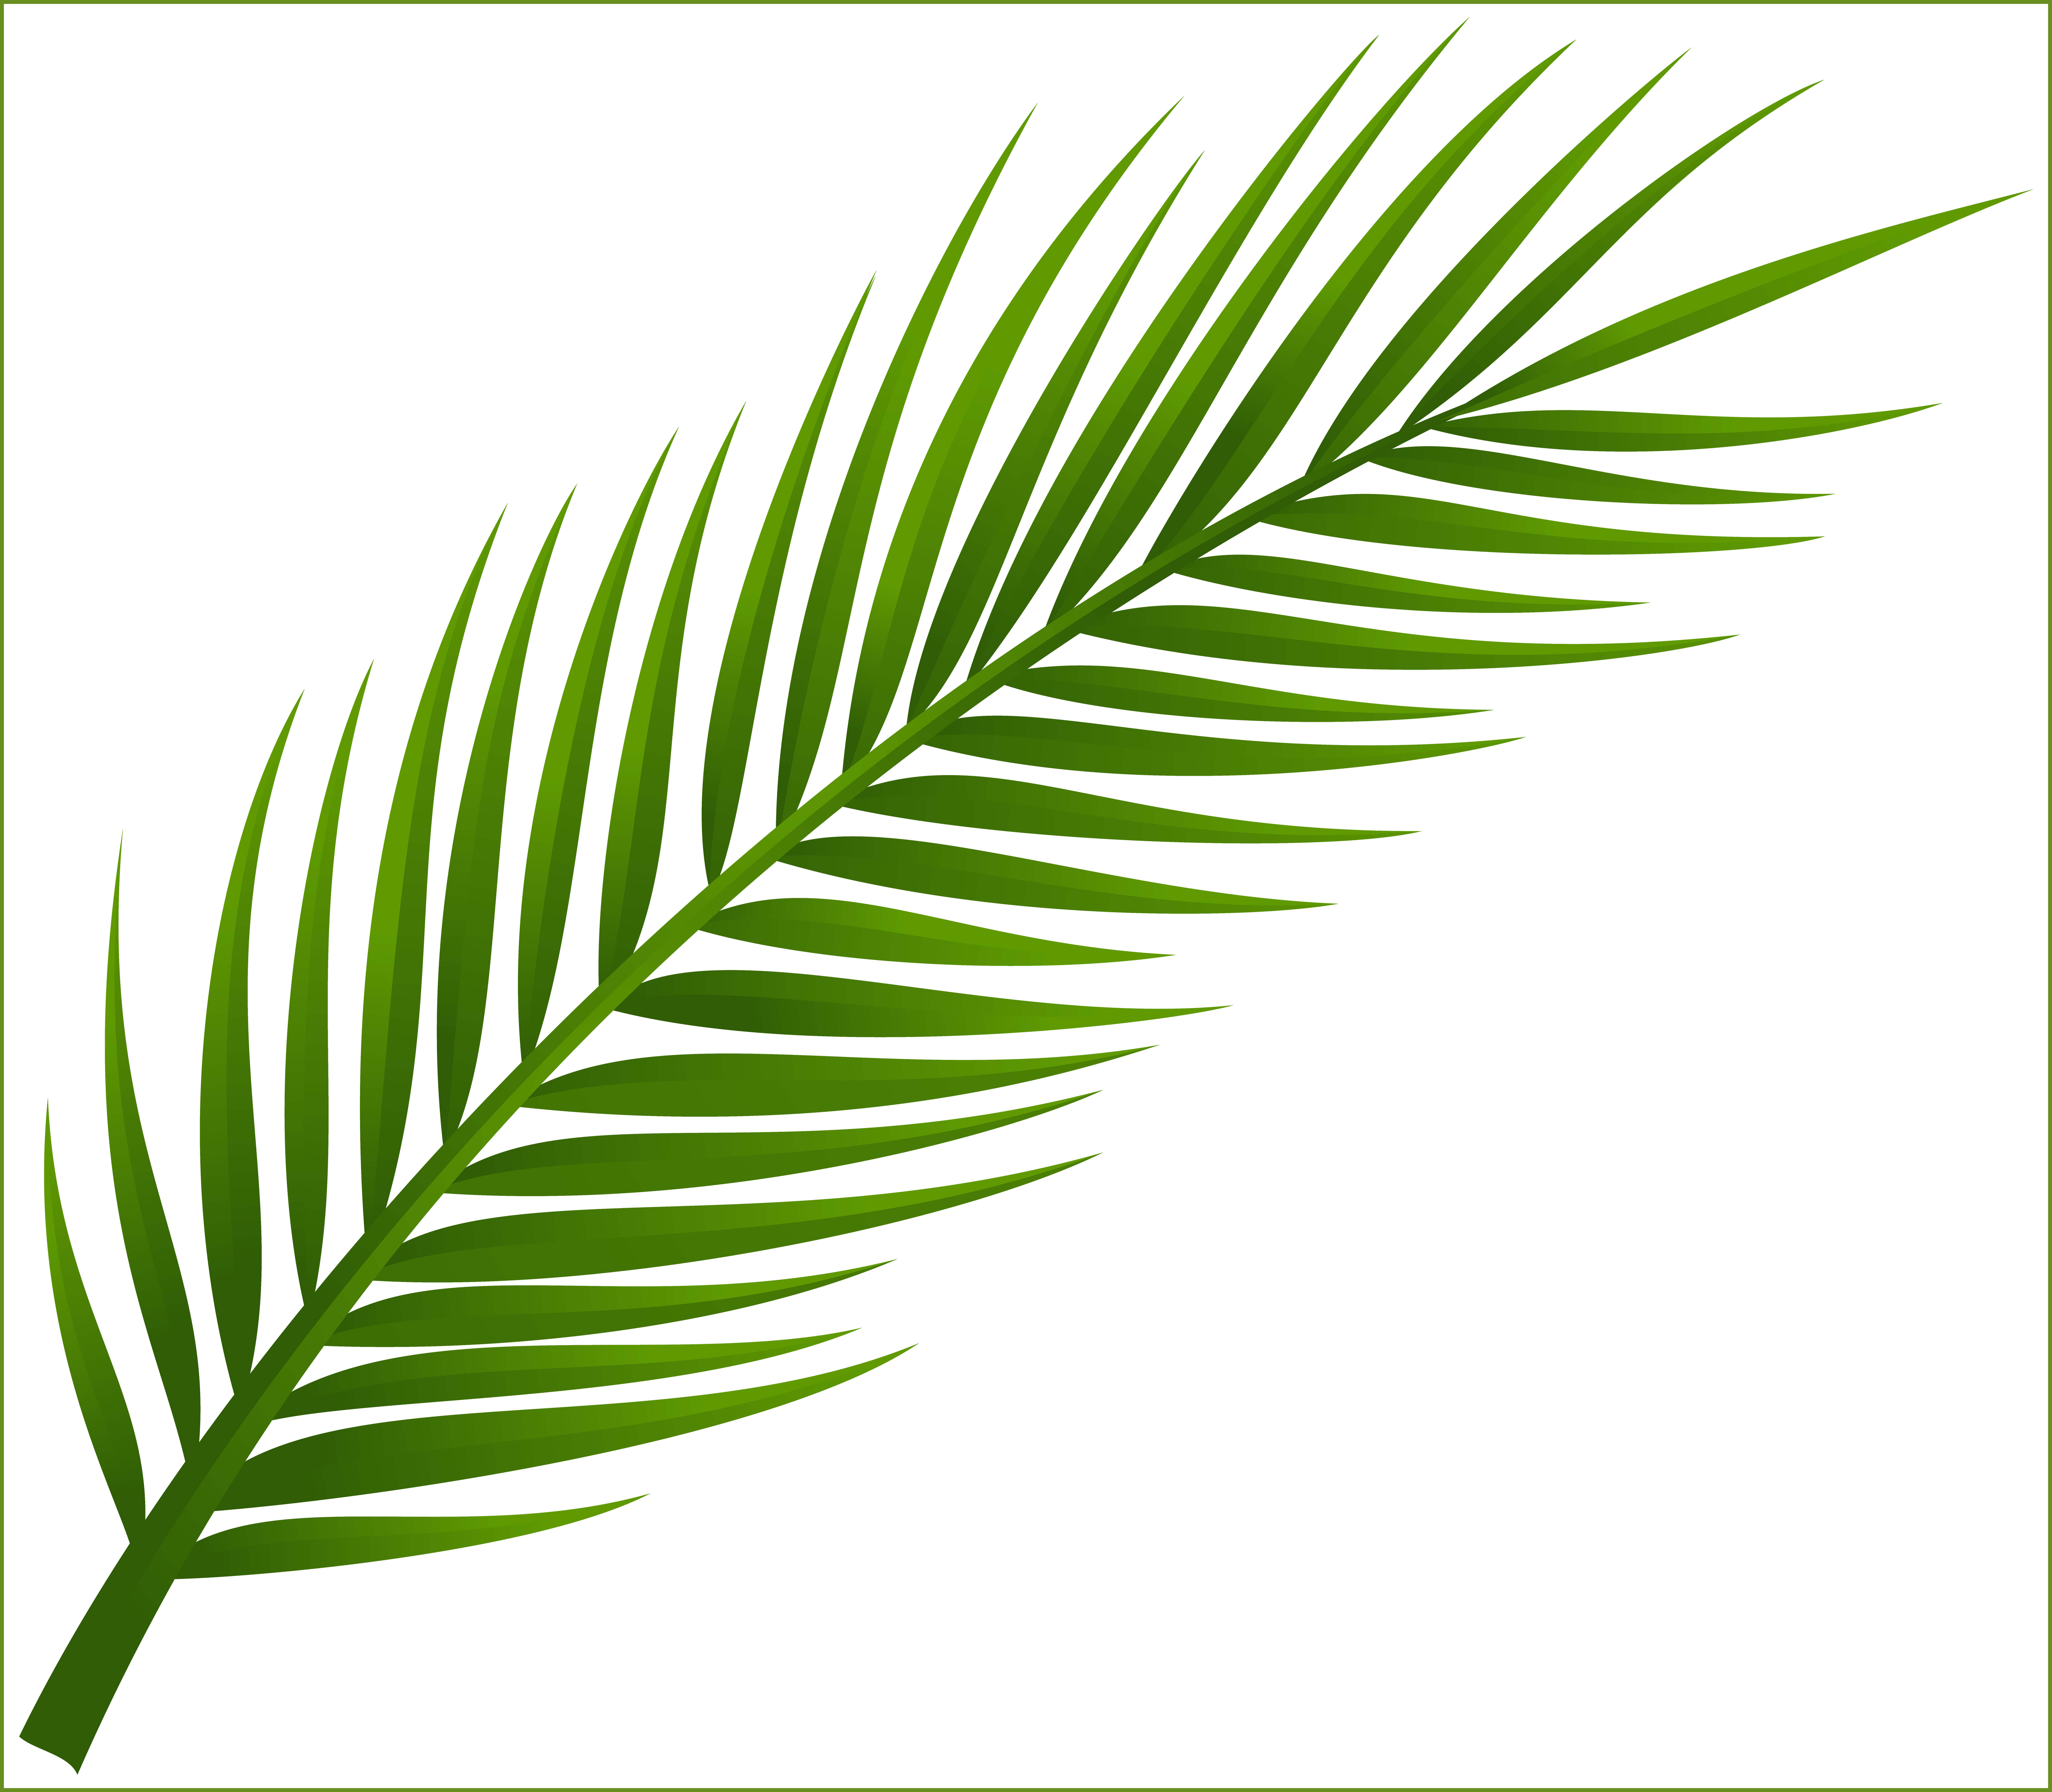 Download png image with. Leaf clipart coconut tree free download